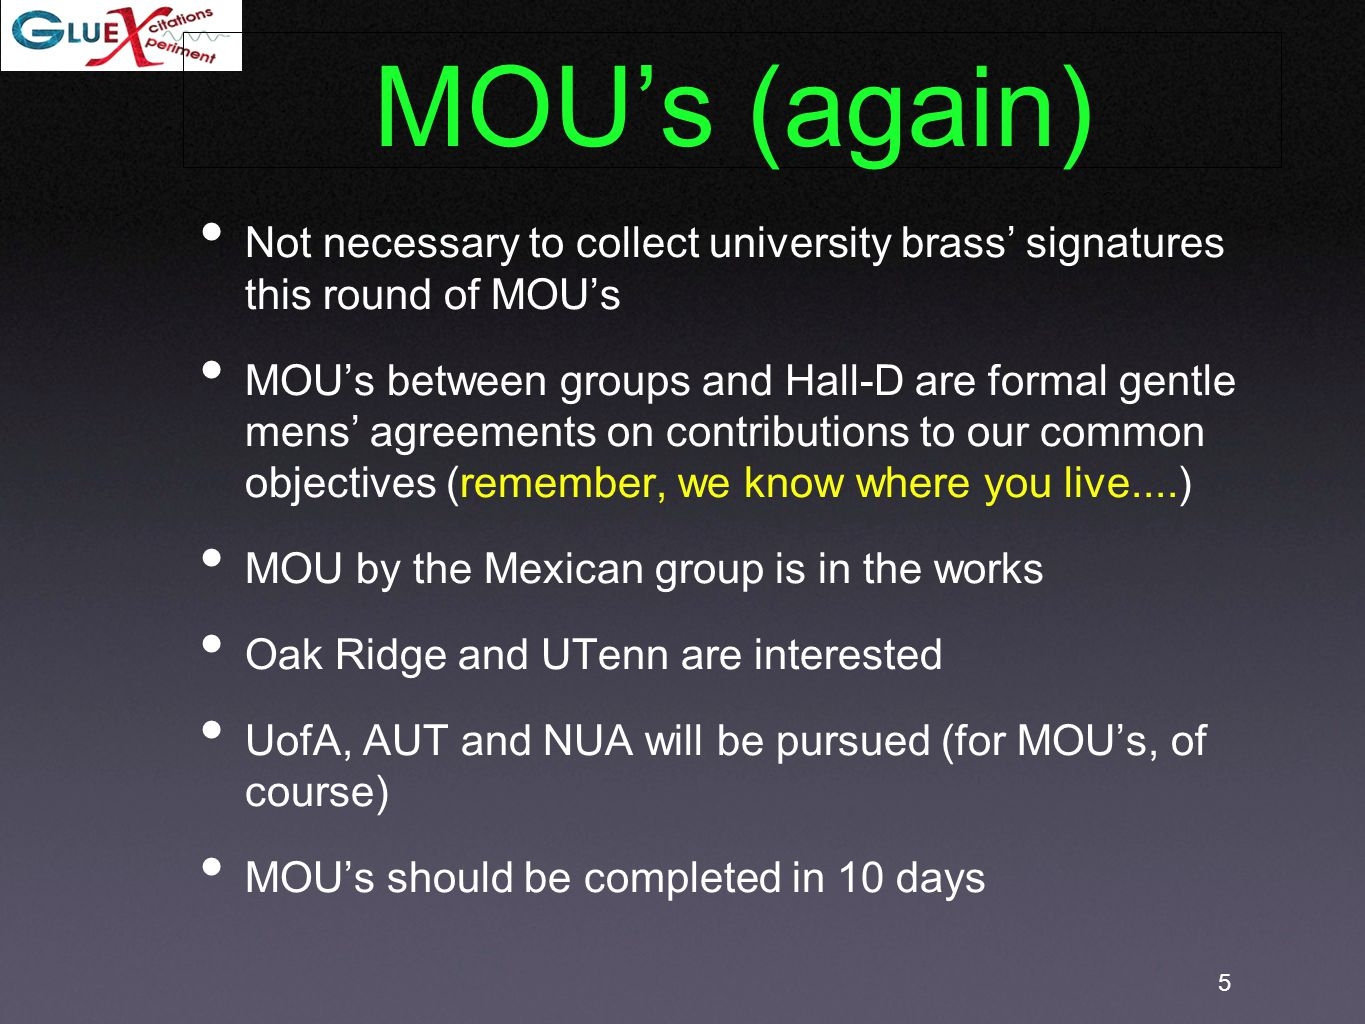 5 Not necessary to collect university brass' signatures this round of MOU's MOU's between groups and Hall-D are formal gentle mens' agreements on contributions to our common objectives (remember, we know where you live....) MOU by the Mexican group is in the works Oak Ridge and UTenn are interested UofA, AUT and NUA will be pursued (for MOU's, of course) MOU's should be completed in 10 days MOU's (again)